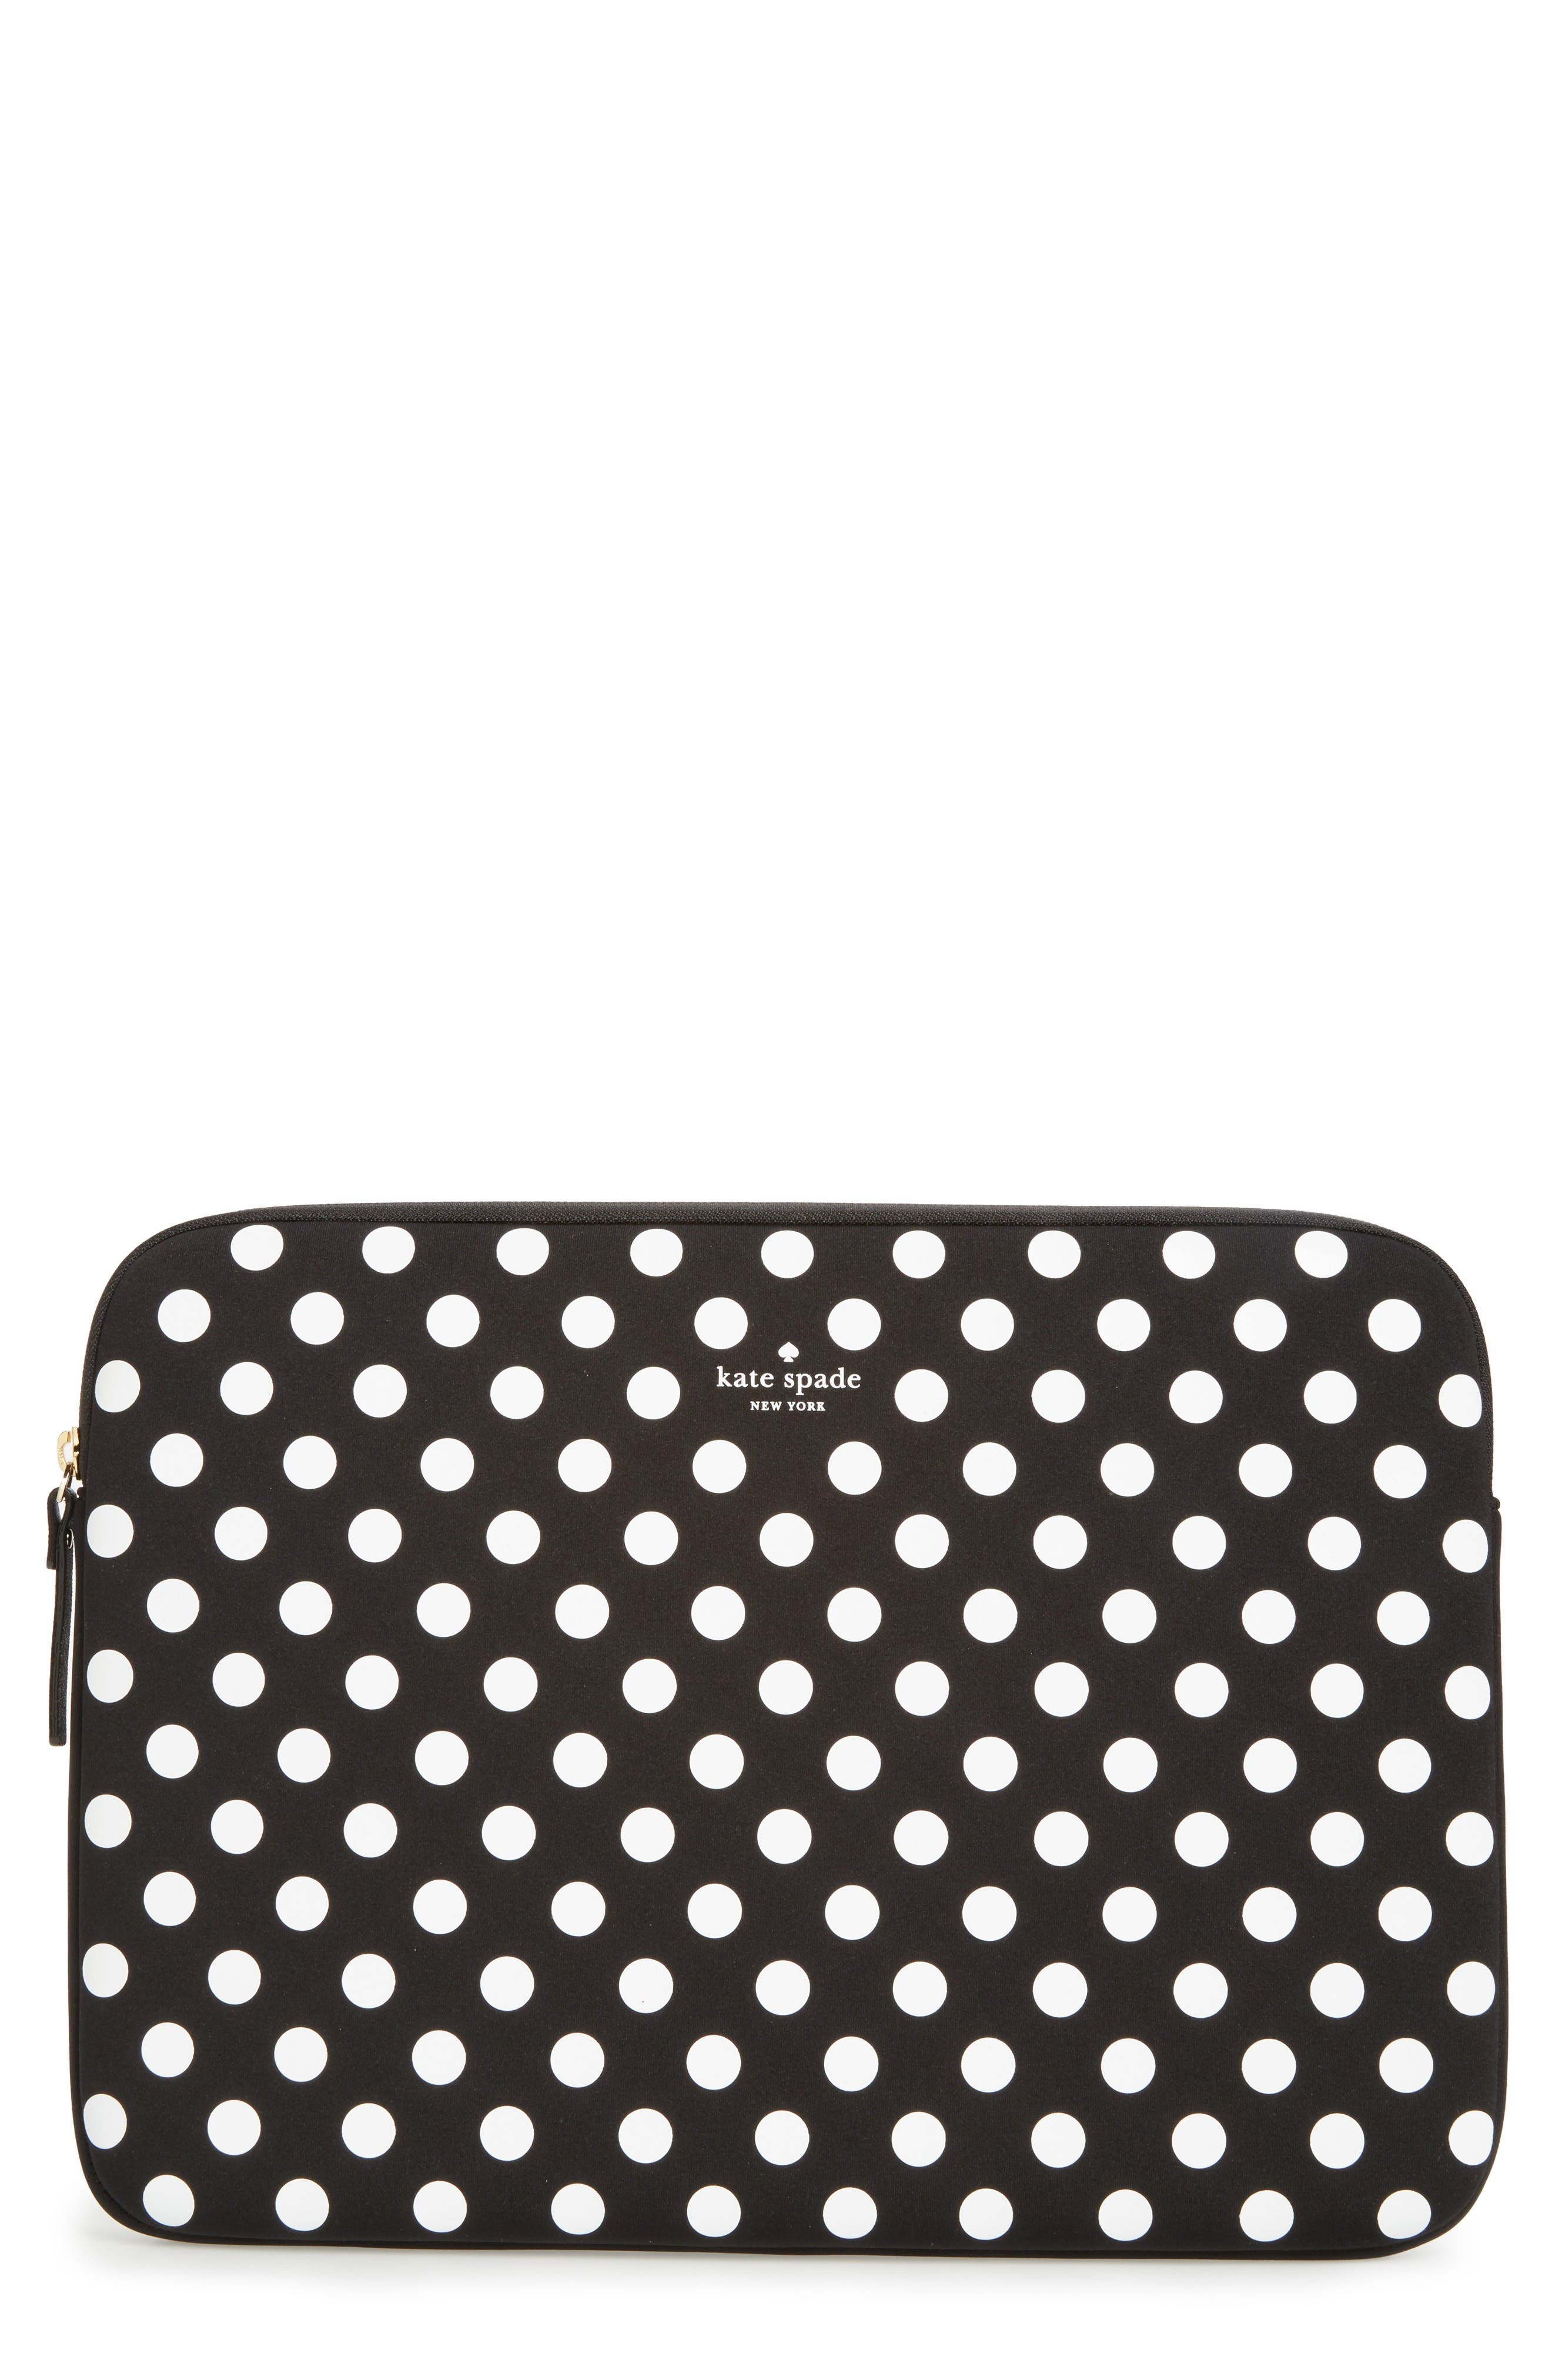 KATE SPADE NEW YORK dot laptop sleeve